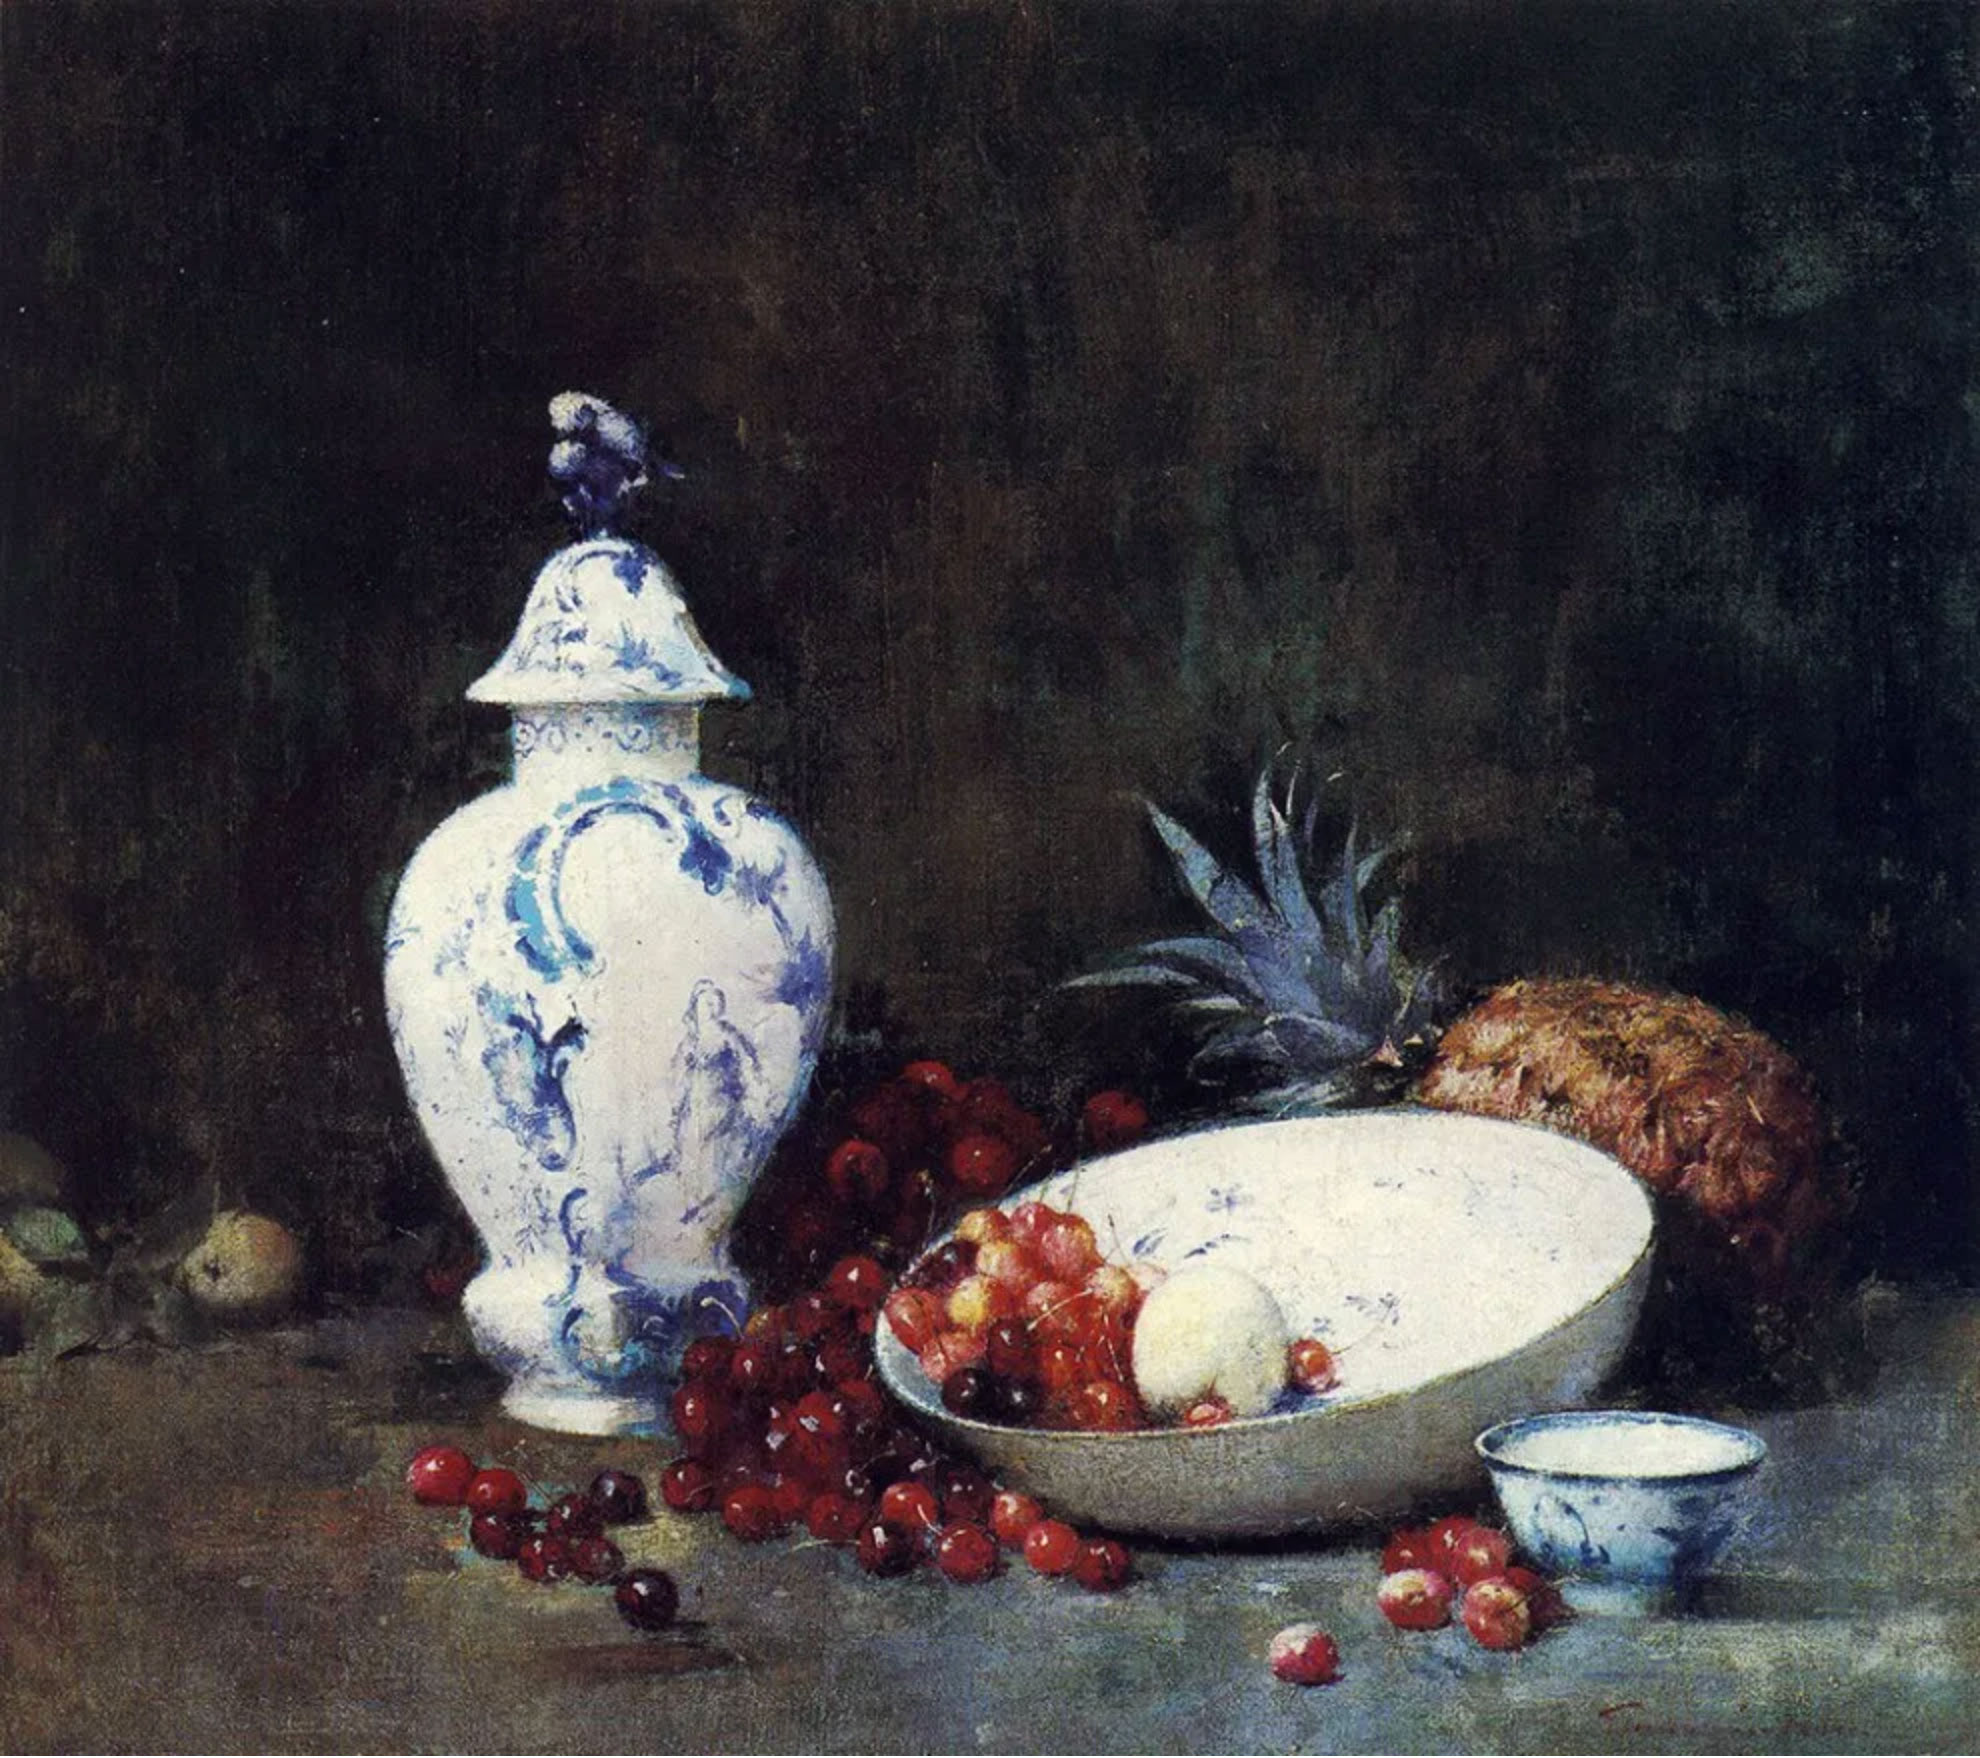 An arrangement of cherries, spilling out of a bowl, with a pineapple propped up against the bowl.